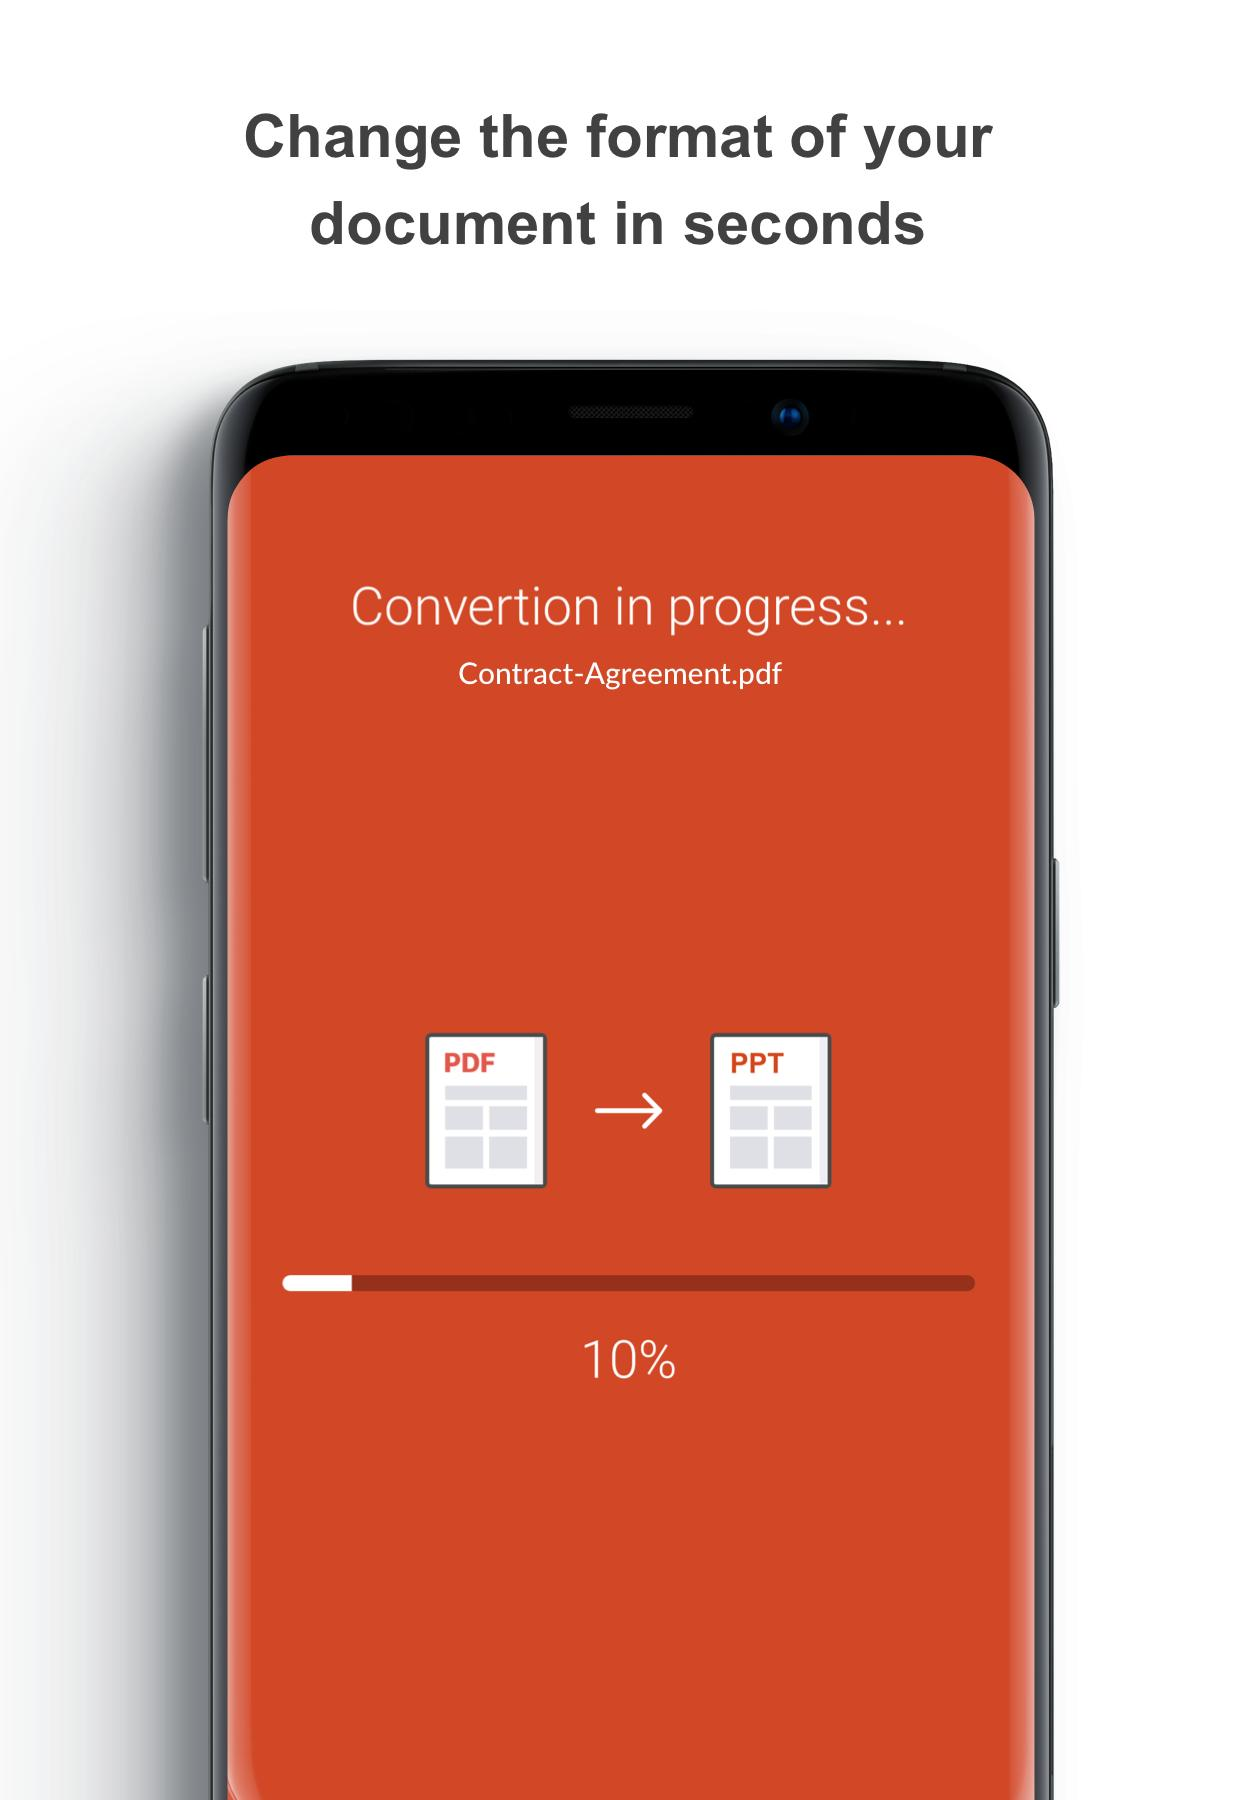 Alto PDF to PPT converter for Android - APK Download